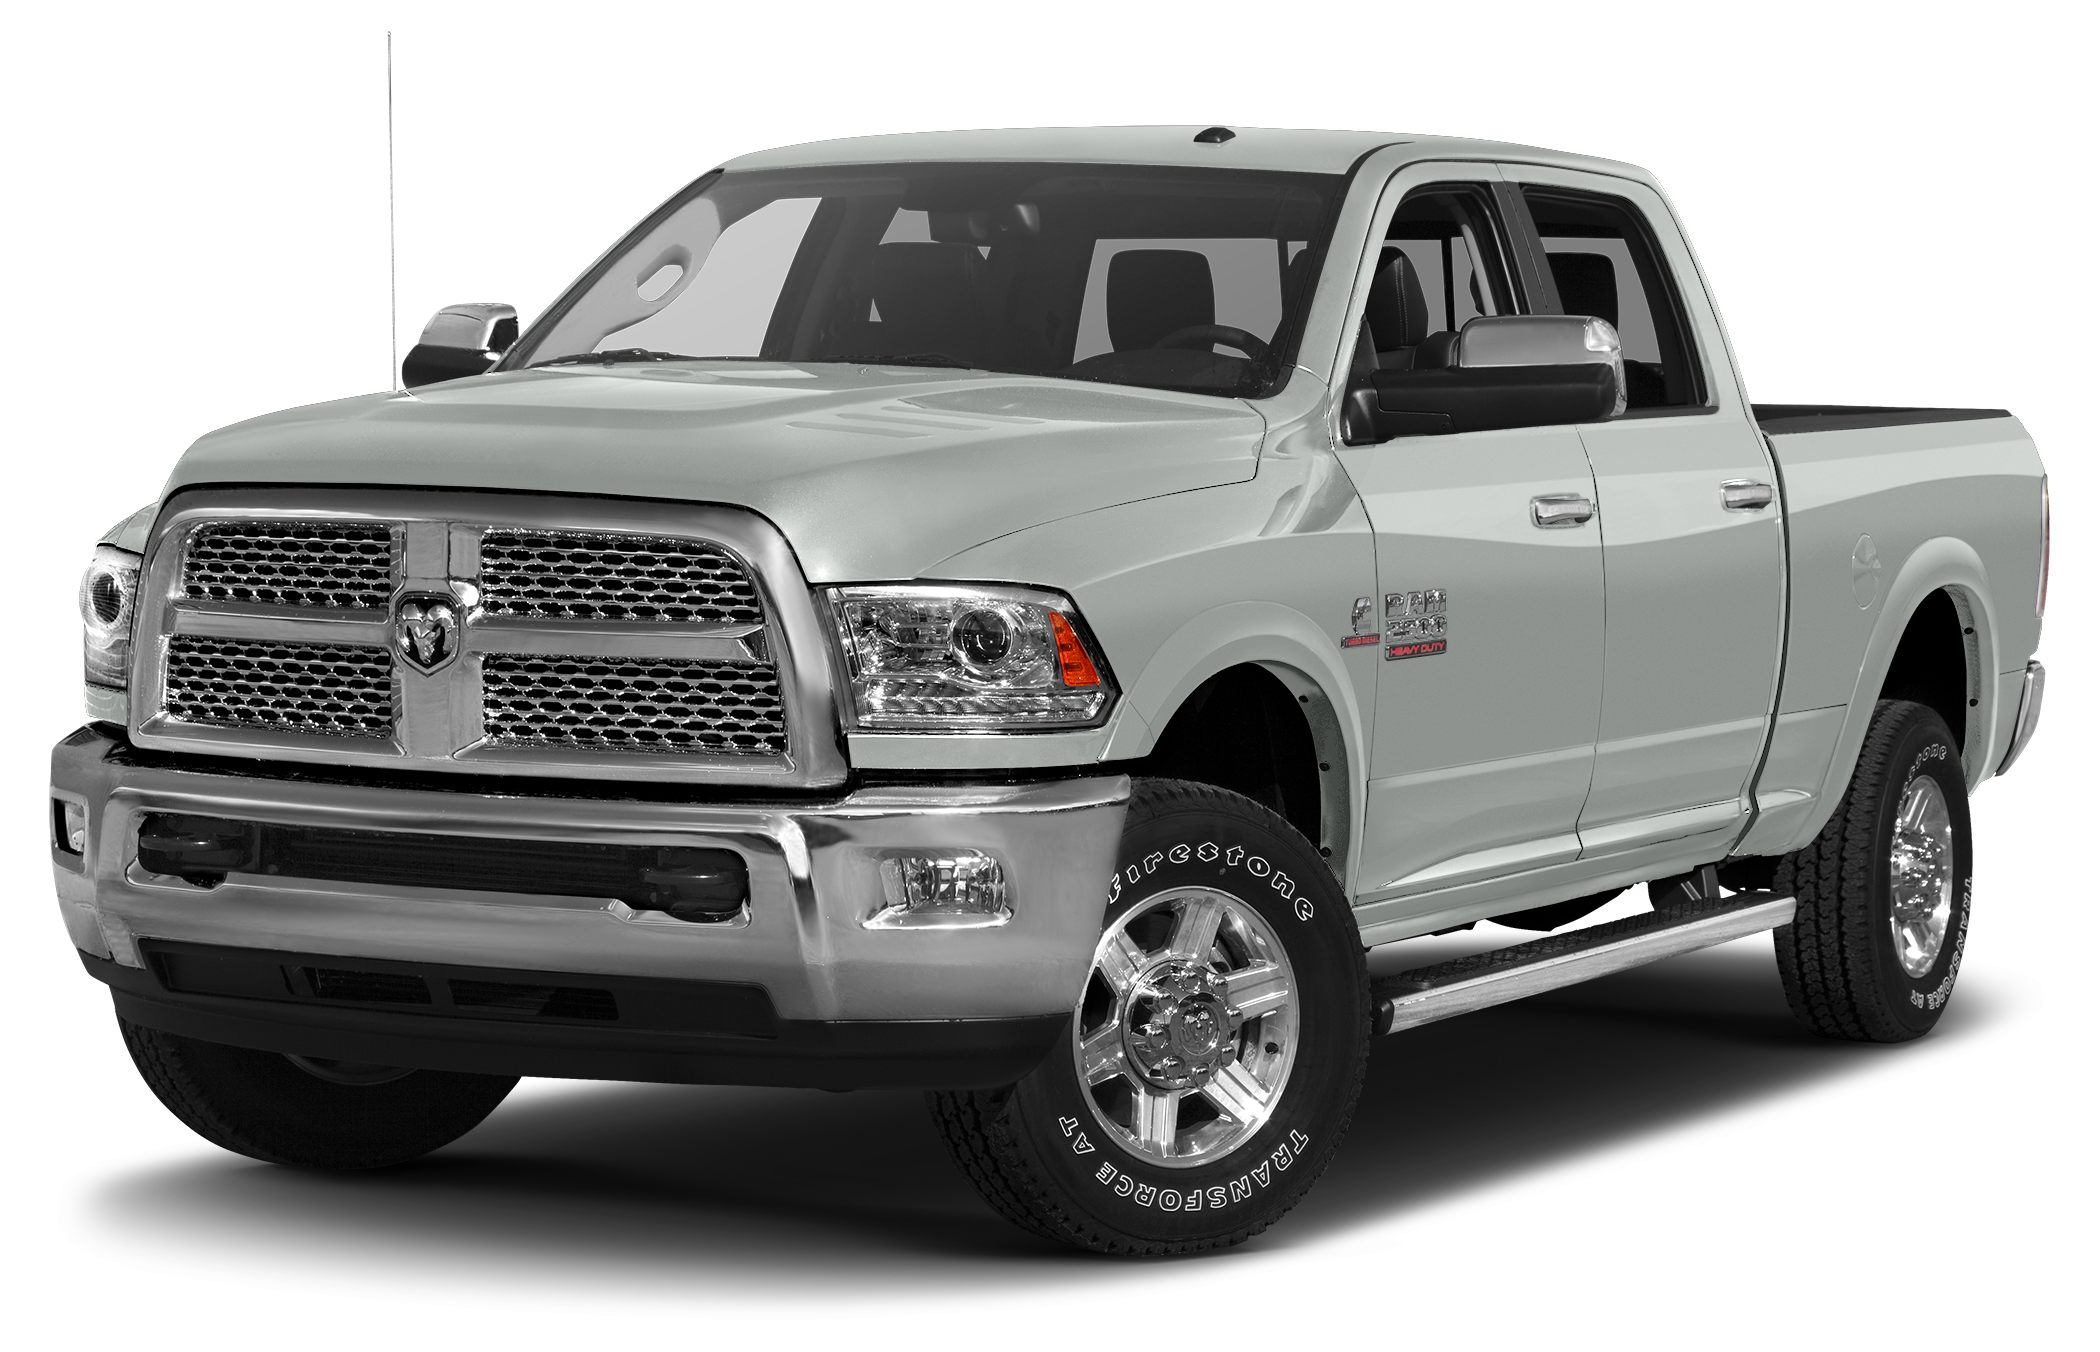 2017 RAM 2500 Laramie 4WD Diesel Nav Dodge has done it again They have built some superb vehic